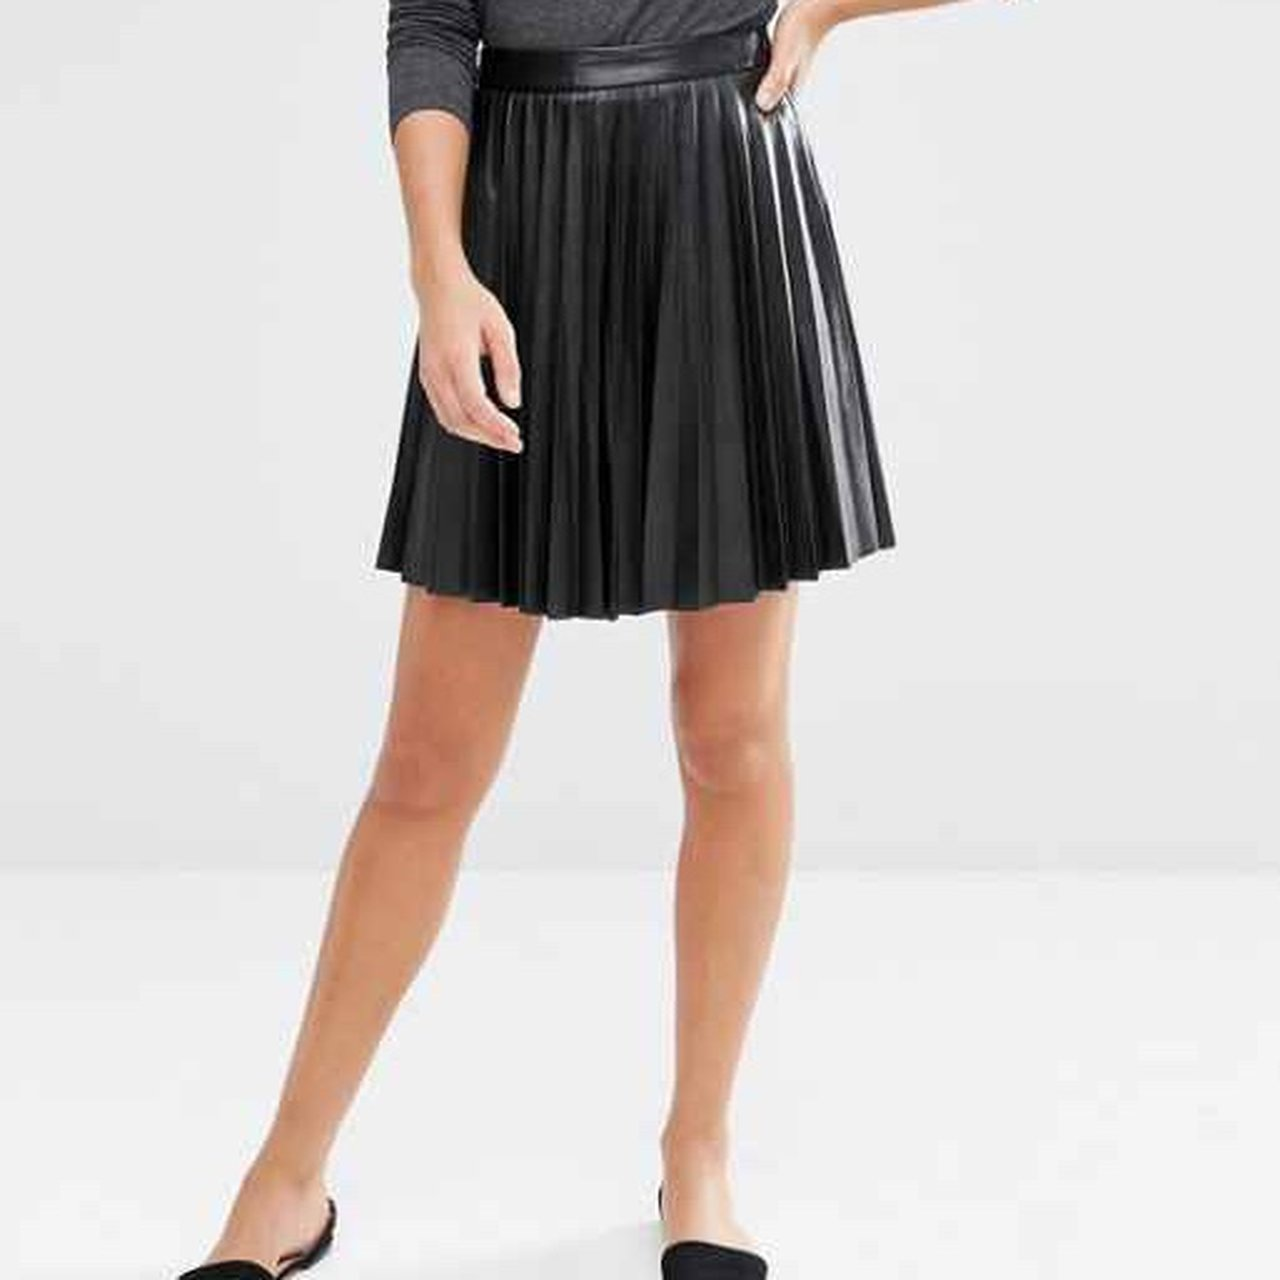 eb0c3d4c6429 Pleated Faux Leather Mini Skirt